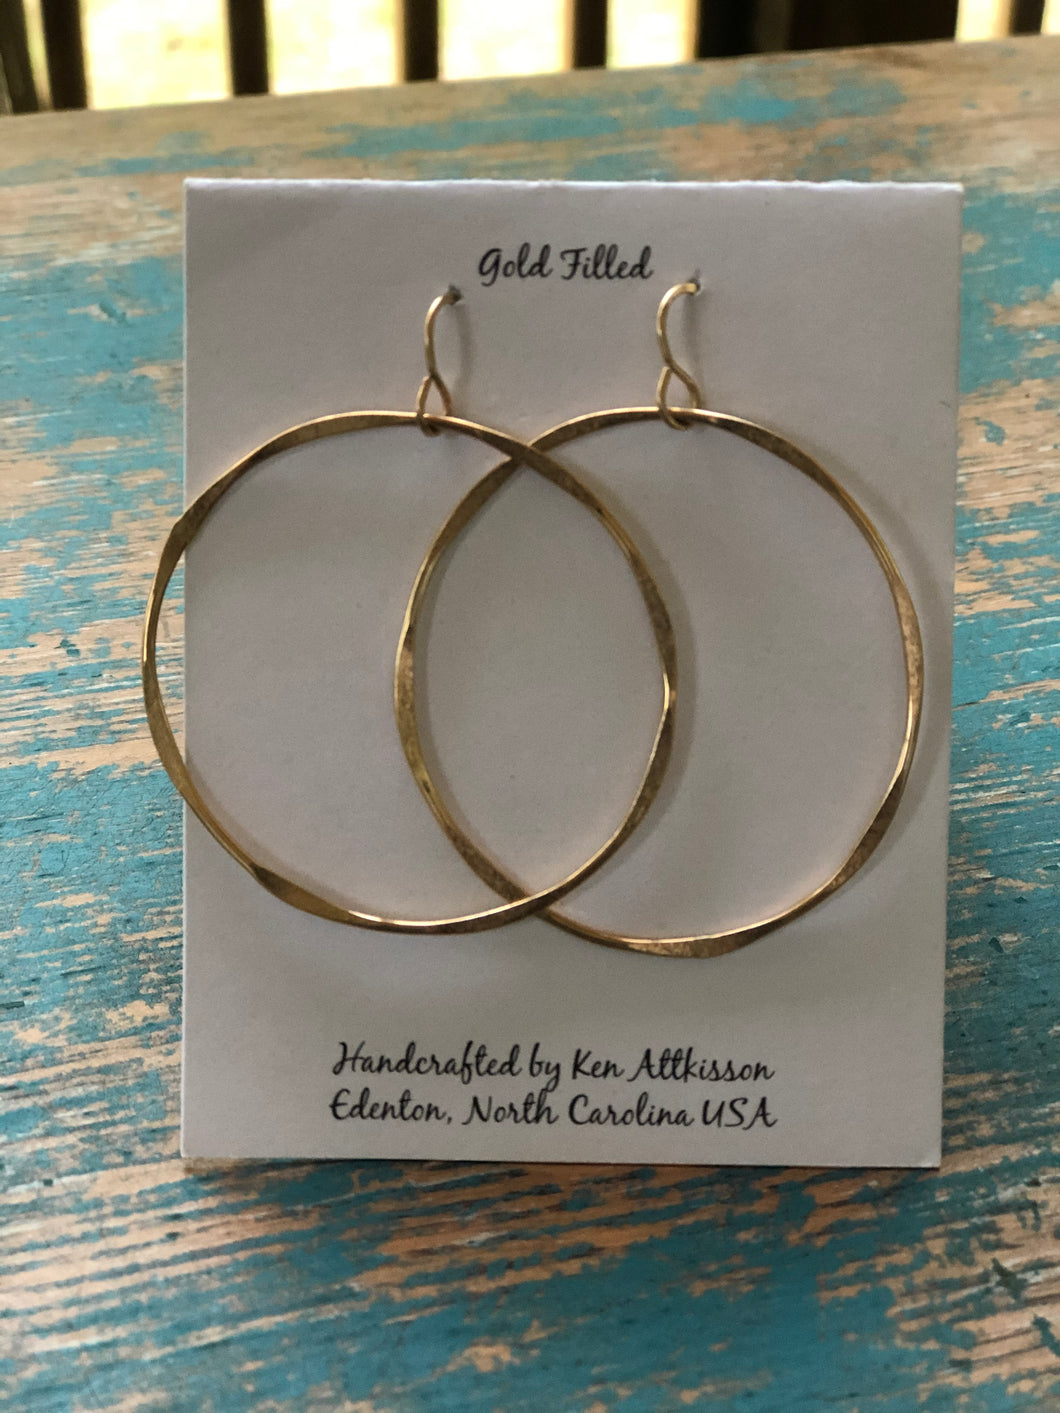 Ken's Handcrafted Earrings - Large Thick Circles, 14k Gold